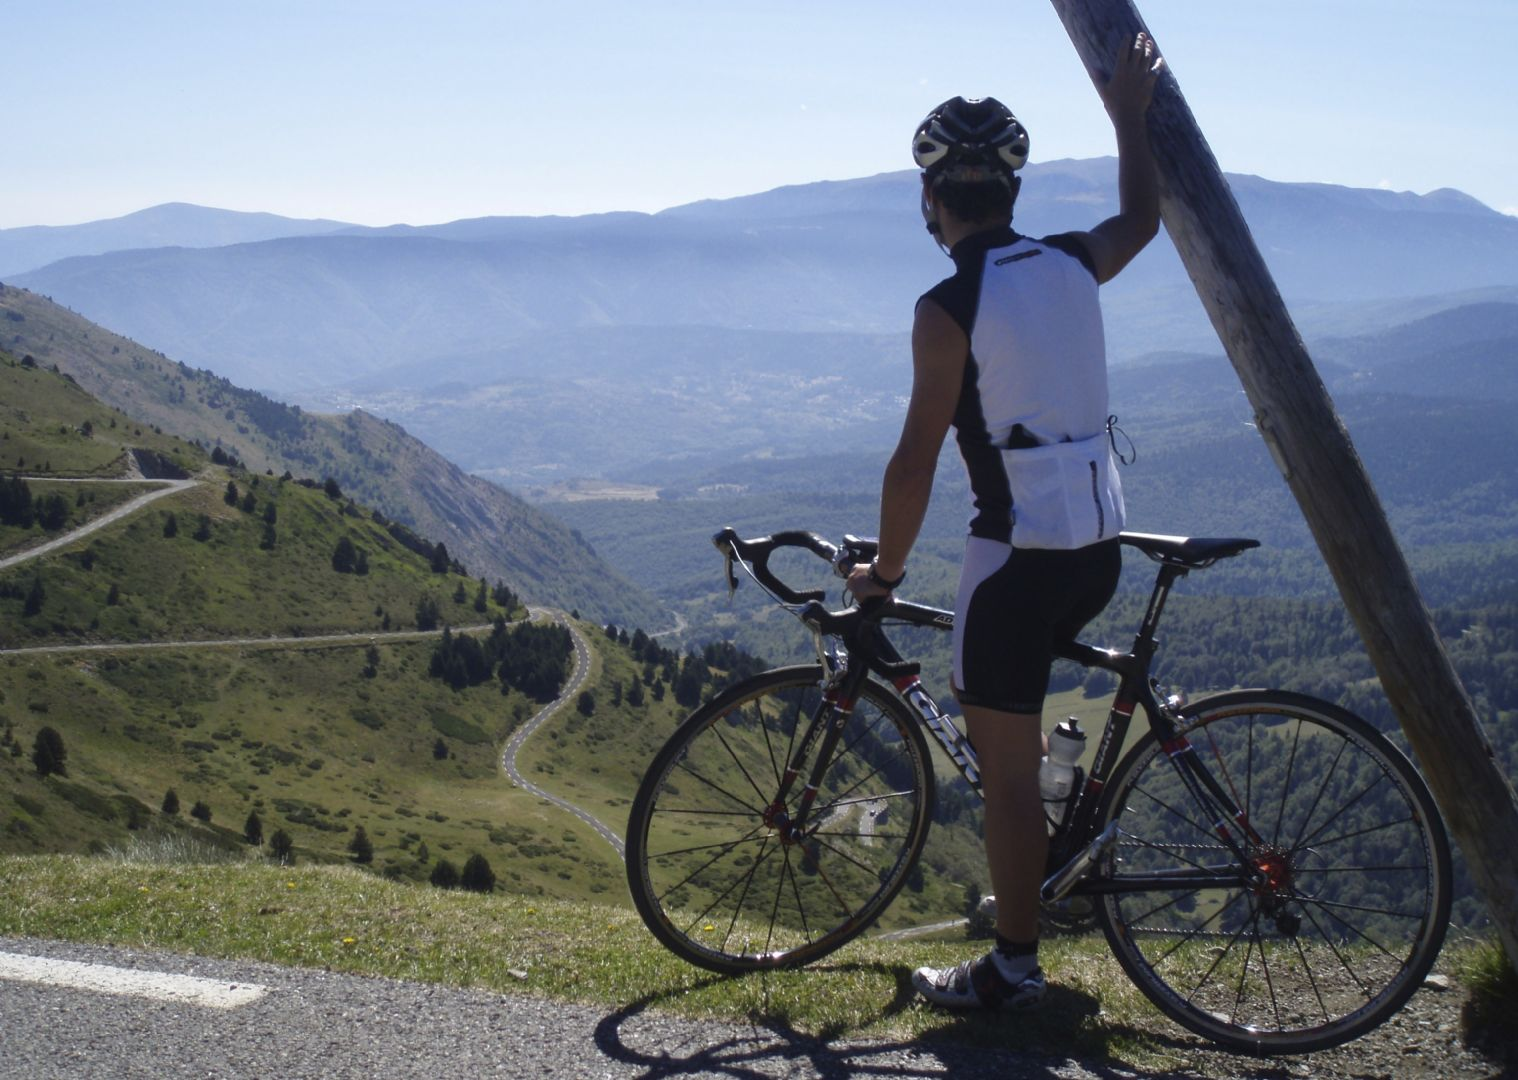 Pyrenees Classic Road Cycling 1.jpg - France - Trans Pyrenees Challenge - Guided Road Cycling Holiday - Road Cycling